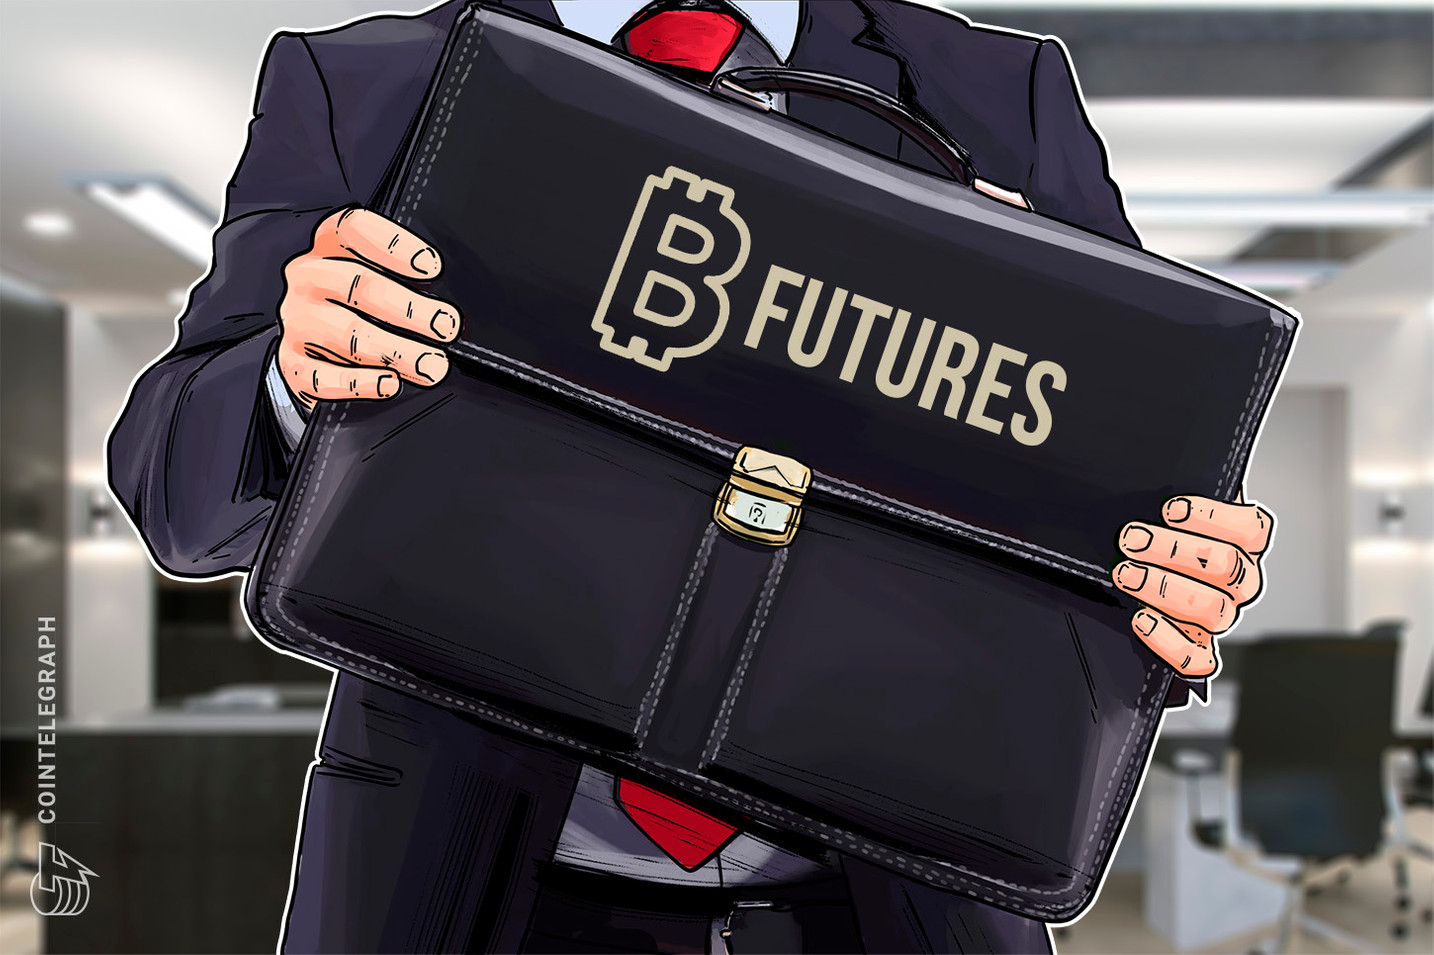 Confirmed: Nasdaq's Bitcoin Futures Will Launch in 'First Half' of 2019